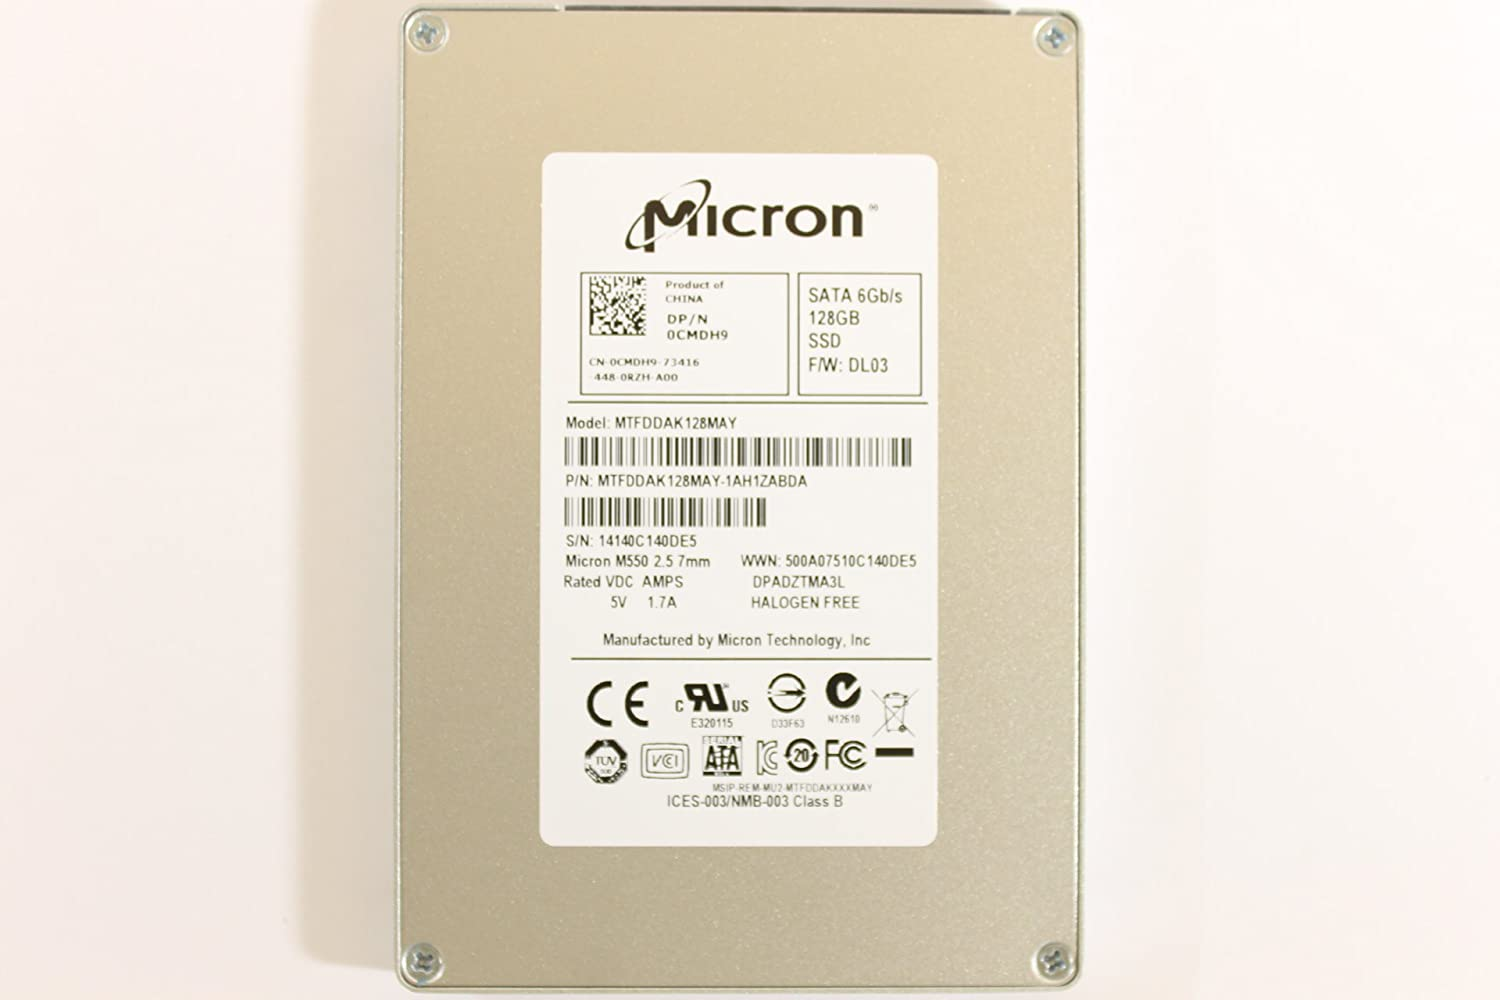 "Dell CMDH9 MTFDDAK128MAY 2.5"" SATA SSD 128GB Micron Laptop Hard Drive Inspiron 5439 Vostro 5439 5470"